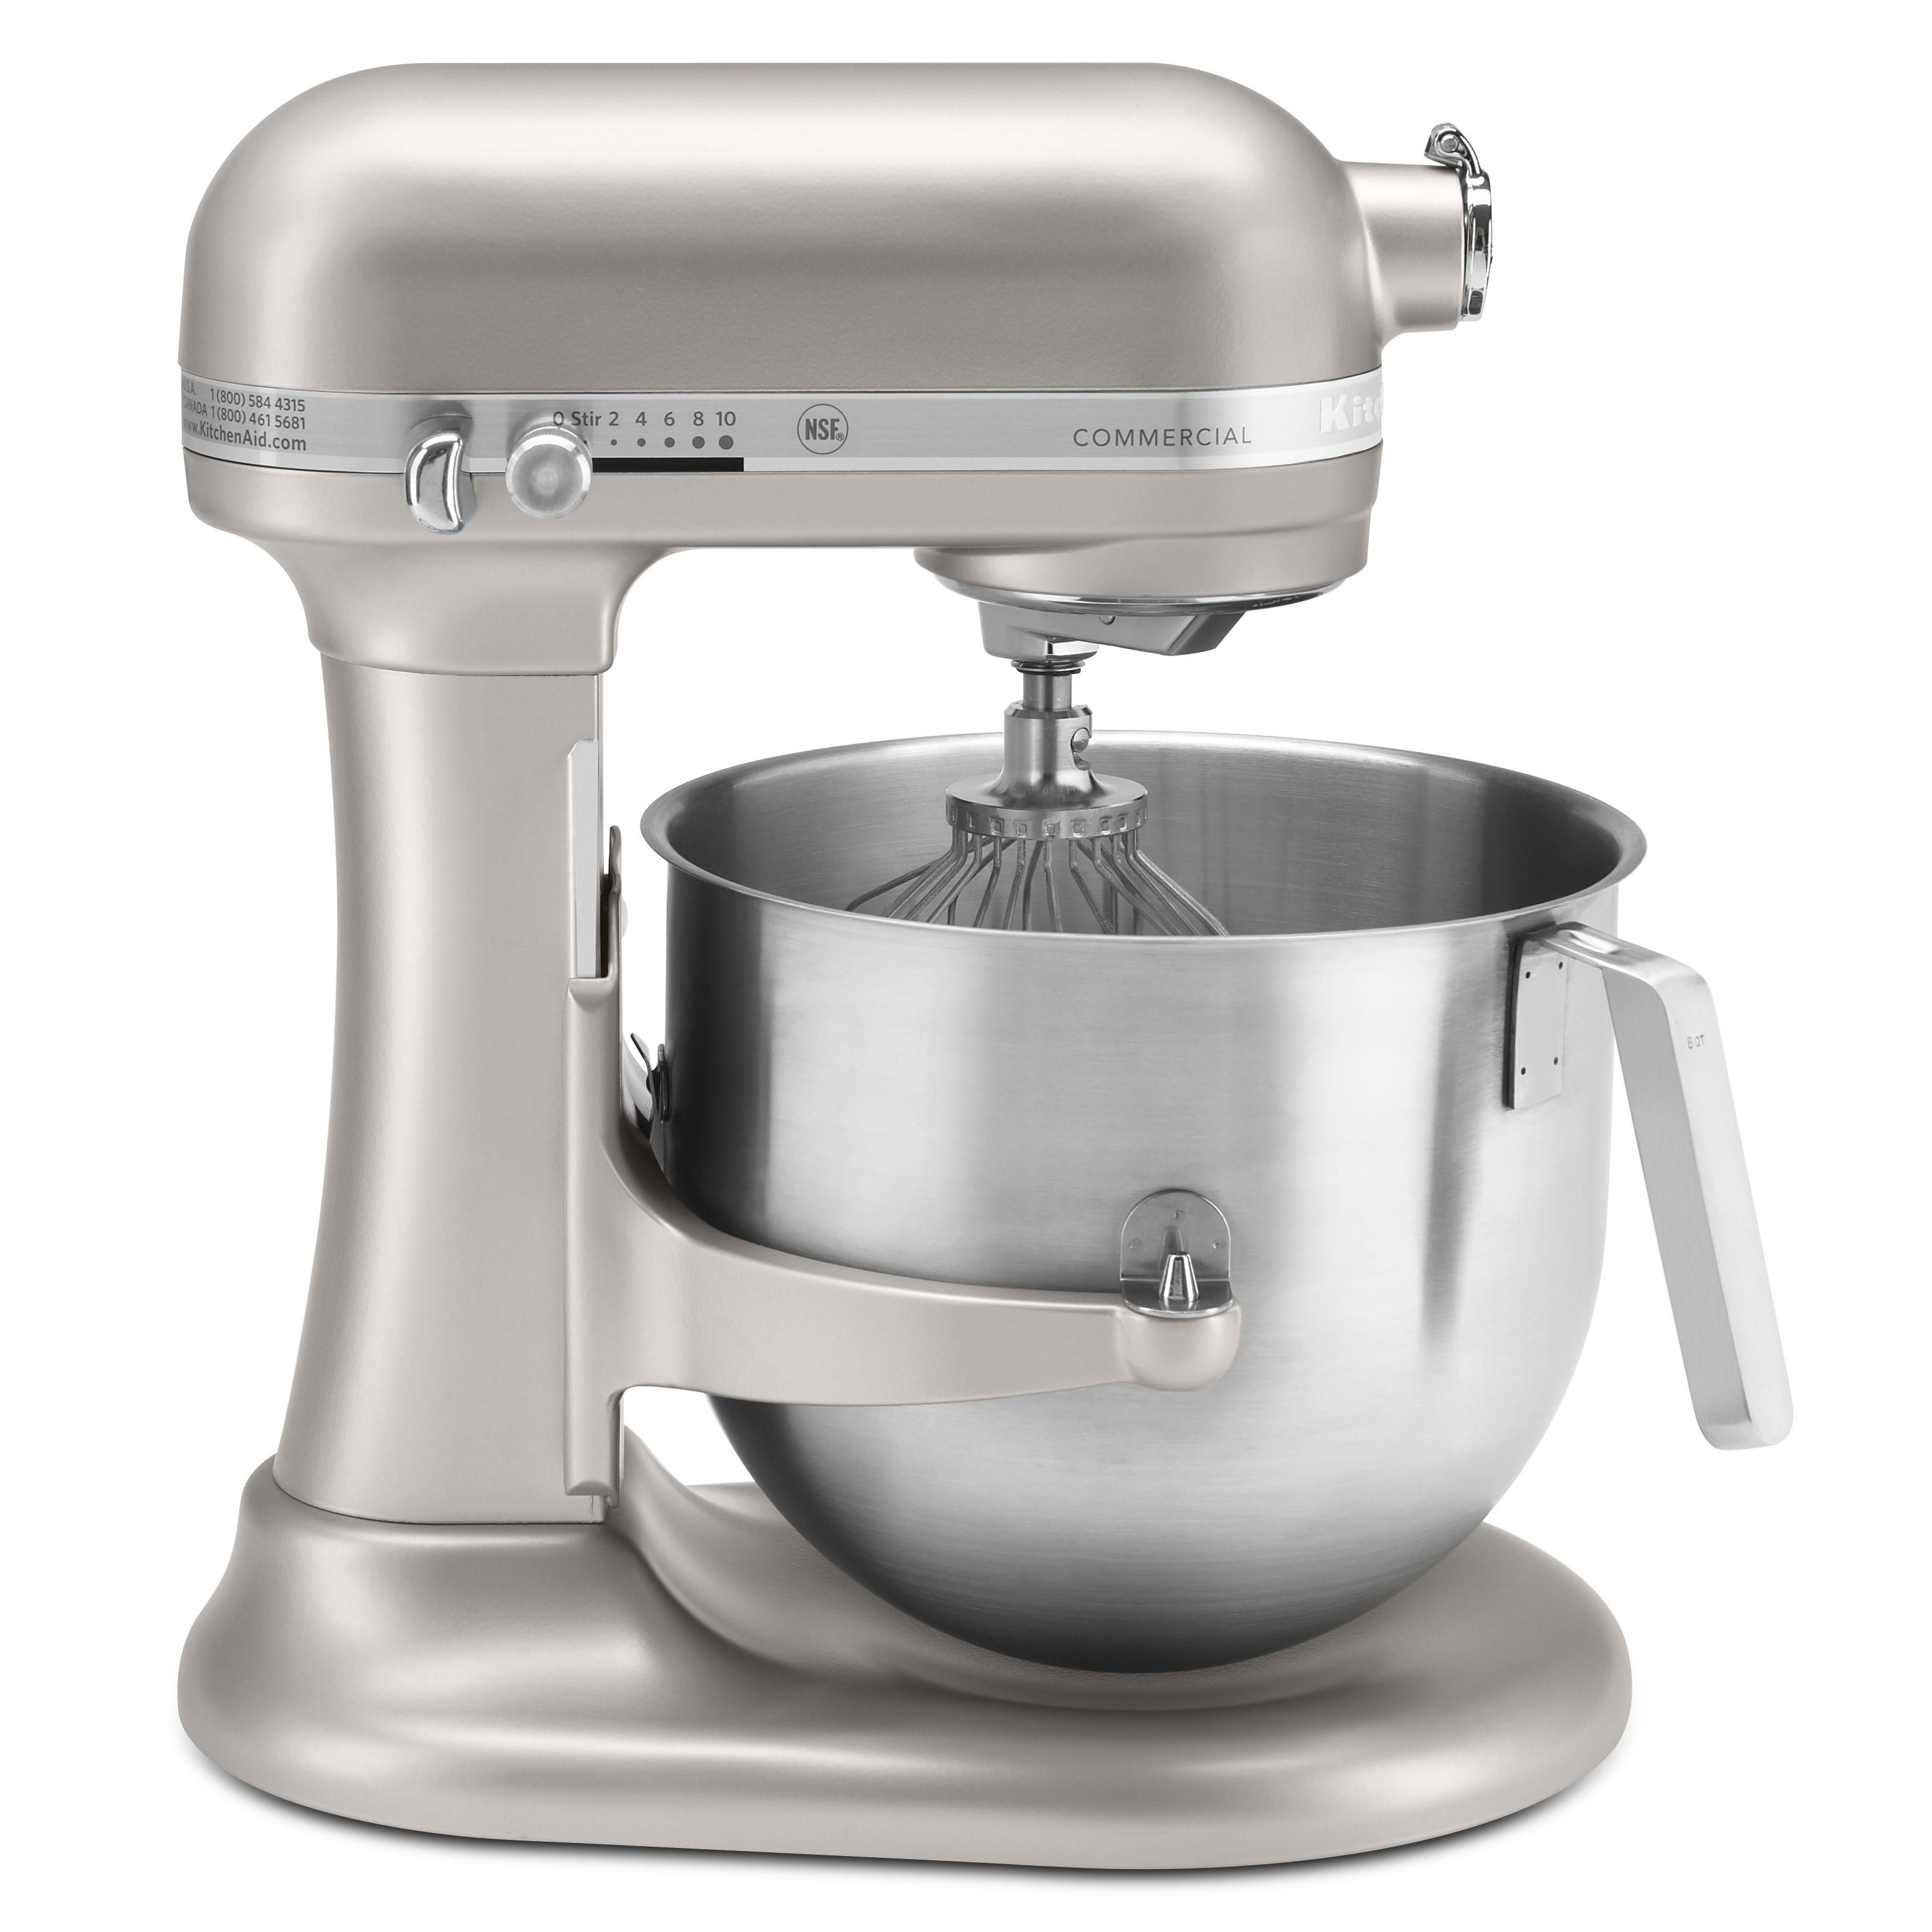 Kitchenaid Ksm8990np Commercial Series Nsf Certified Stand Mixer 8 Quart Nickel